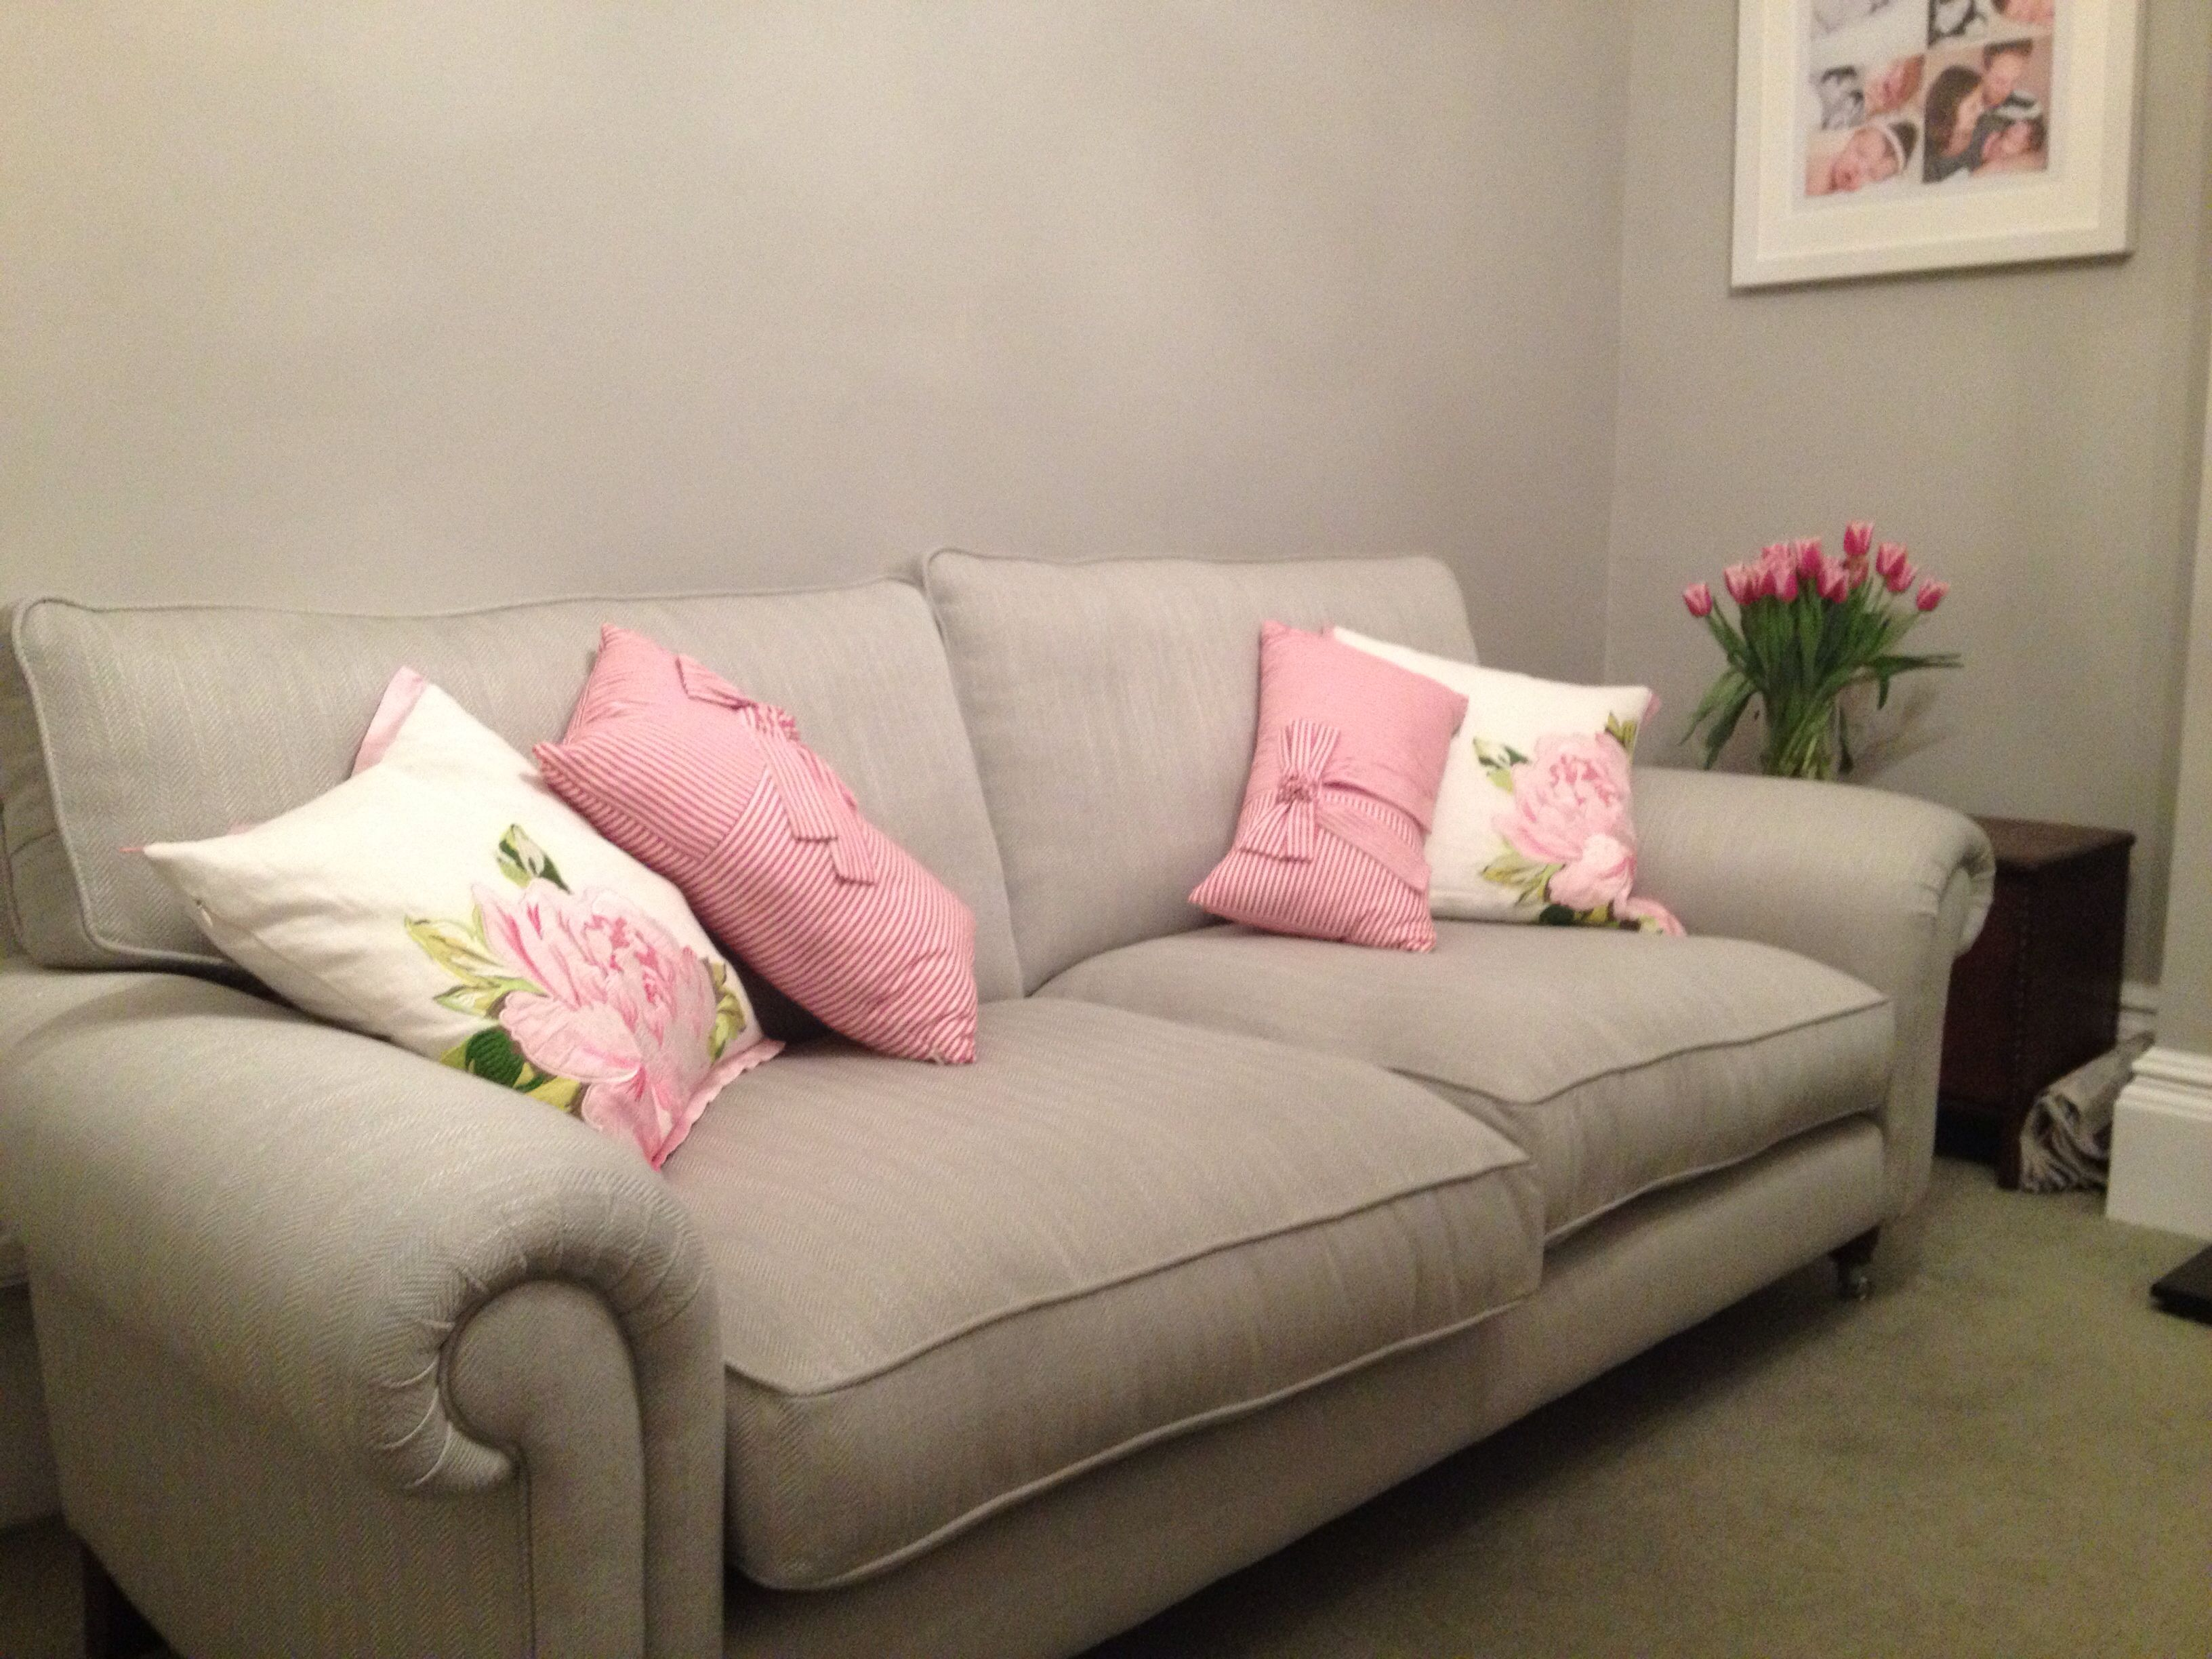 Edwin Grey Sofa From Laura Ashley Walls Are Little Greene French Trying To Decide On Cushions Now